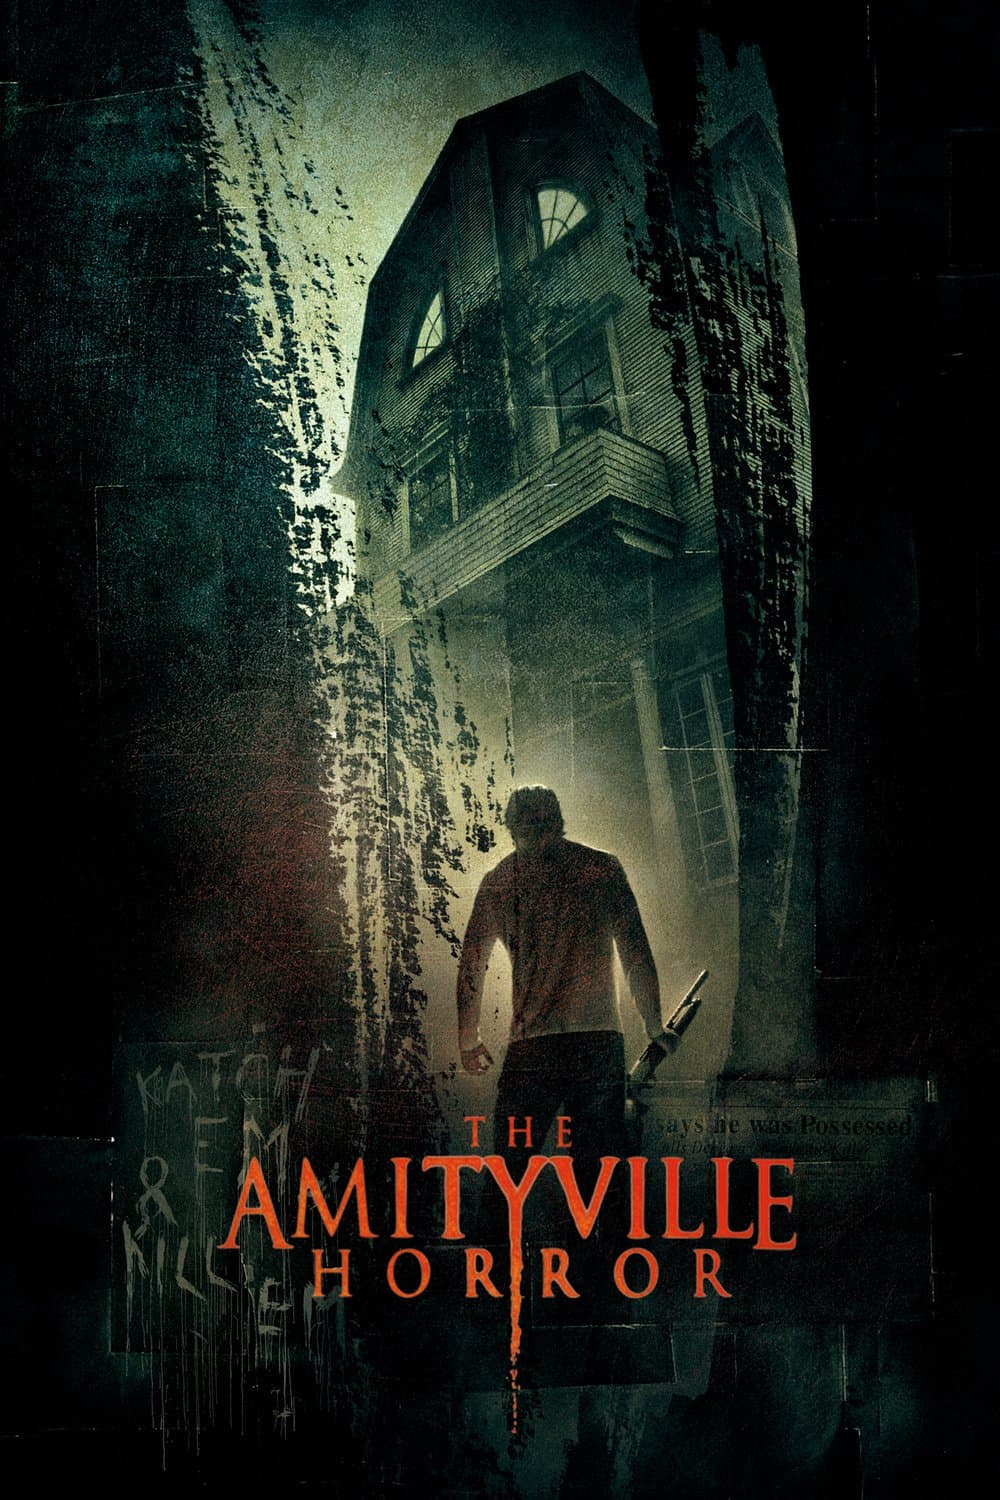 The Amityville Horror, 2005